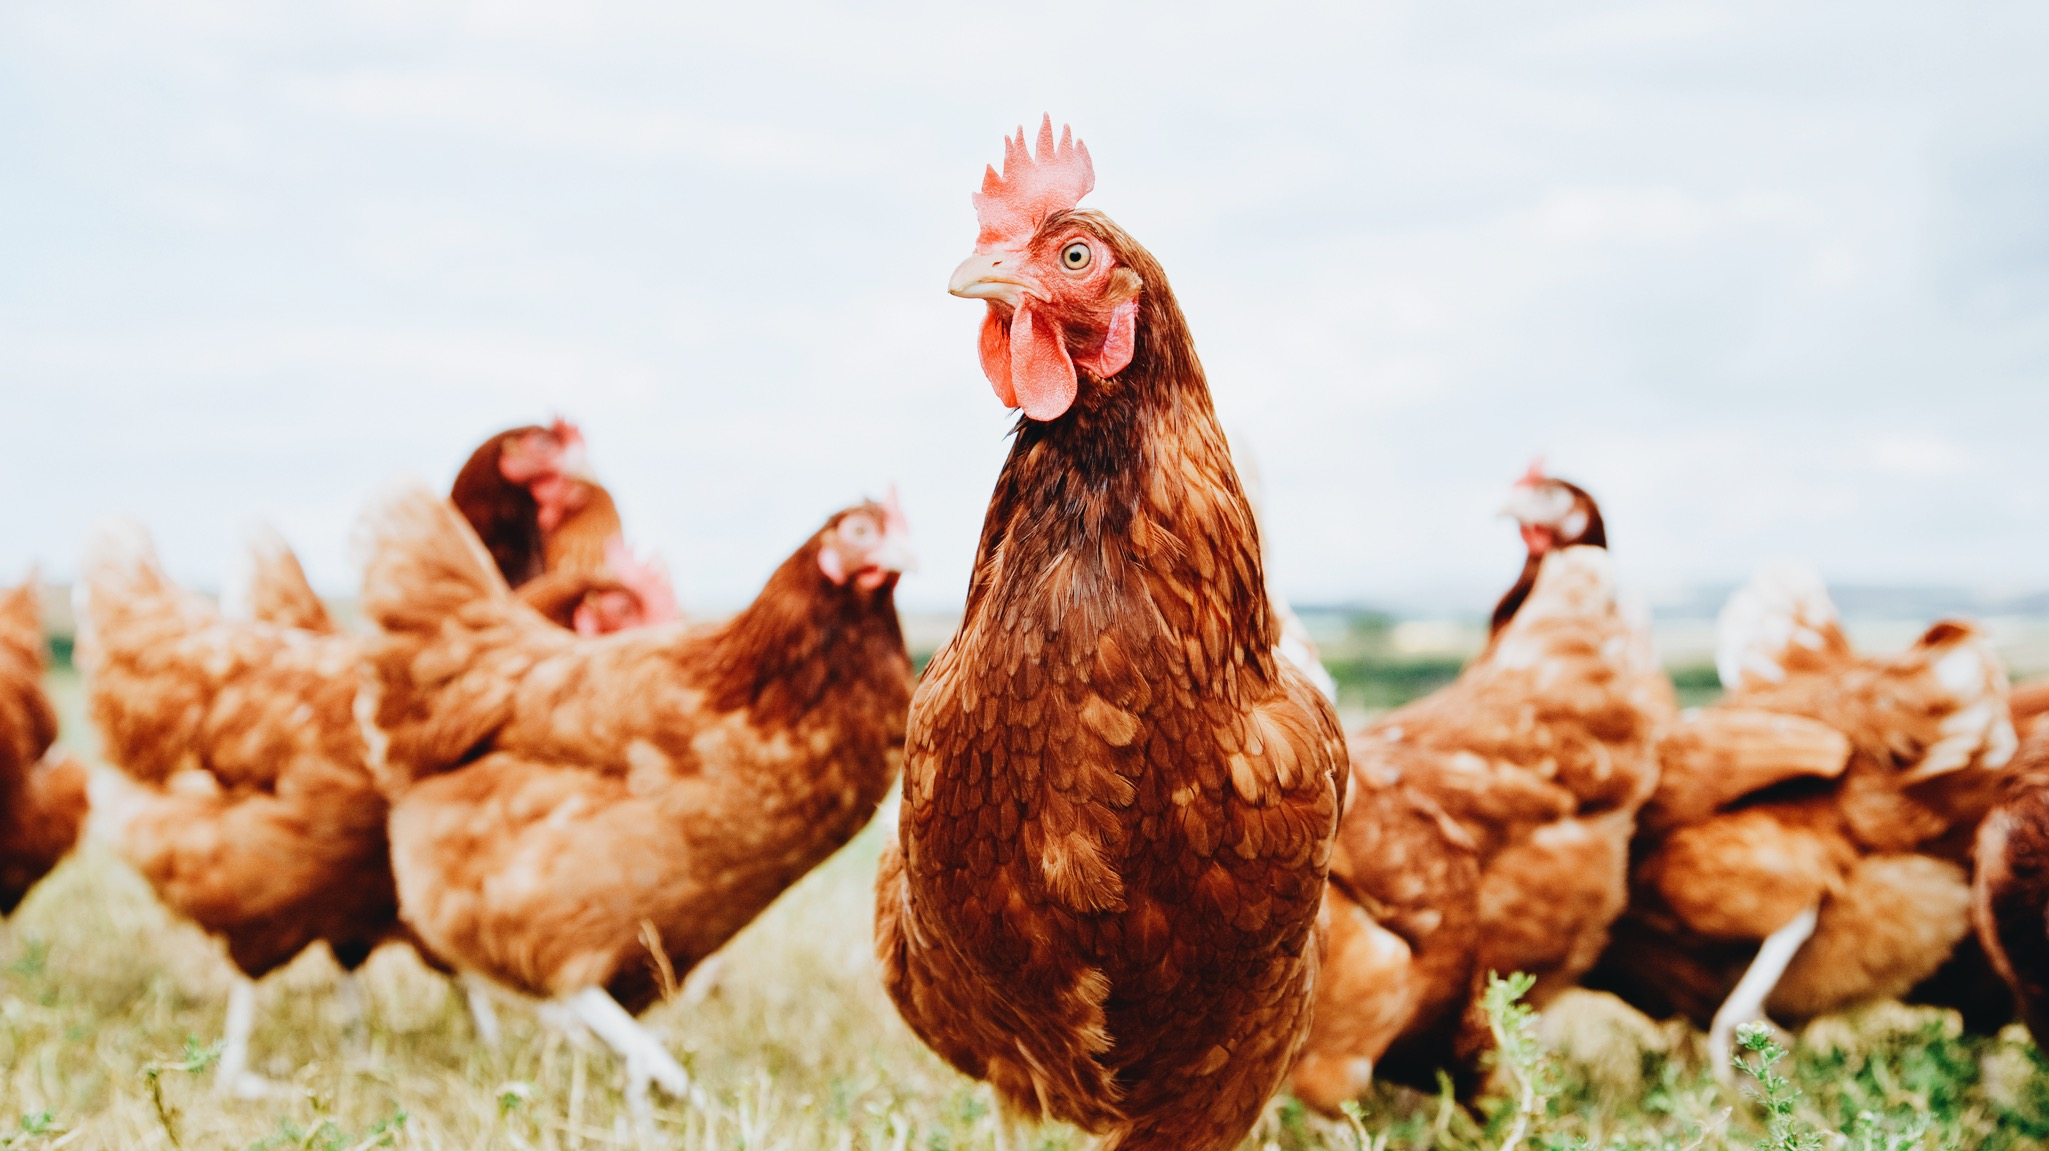 Photograph of chickens roaming together in a green field outside.